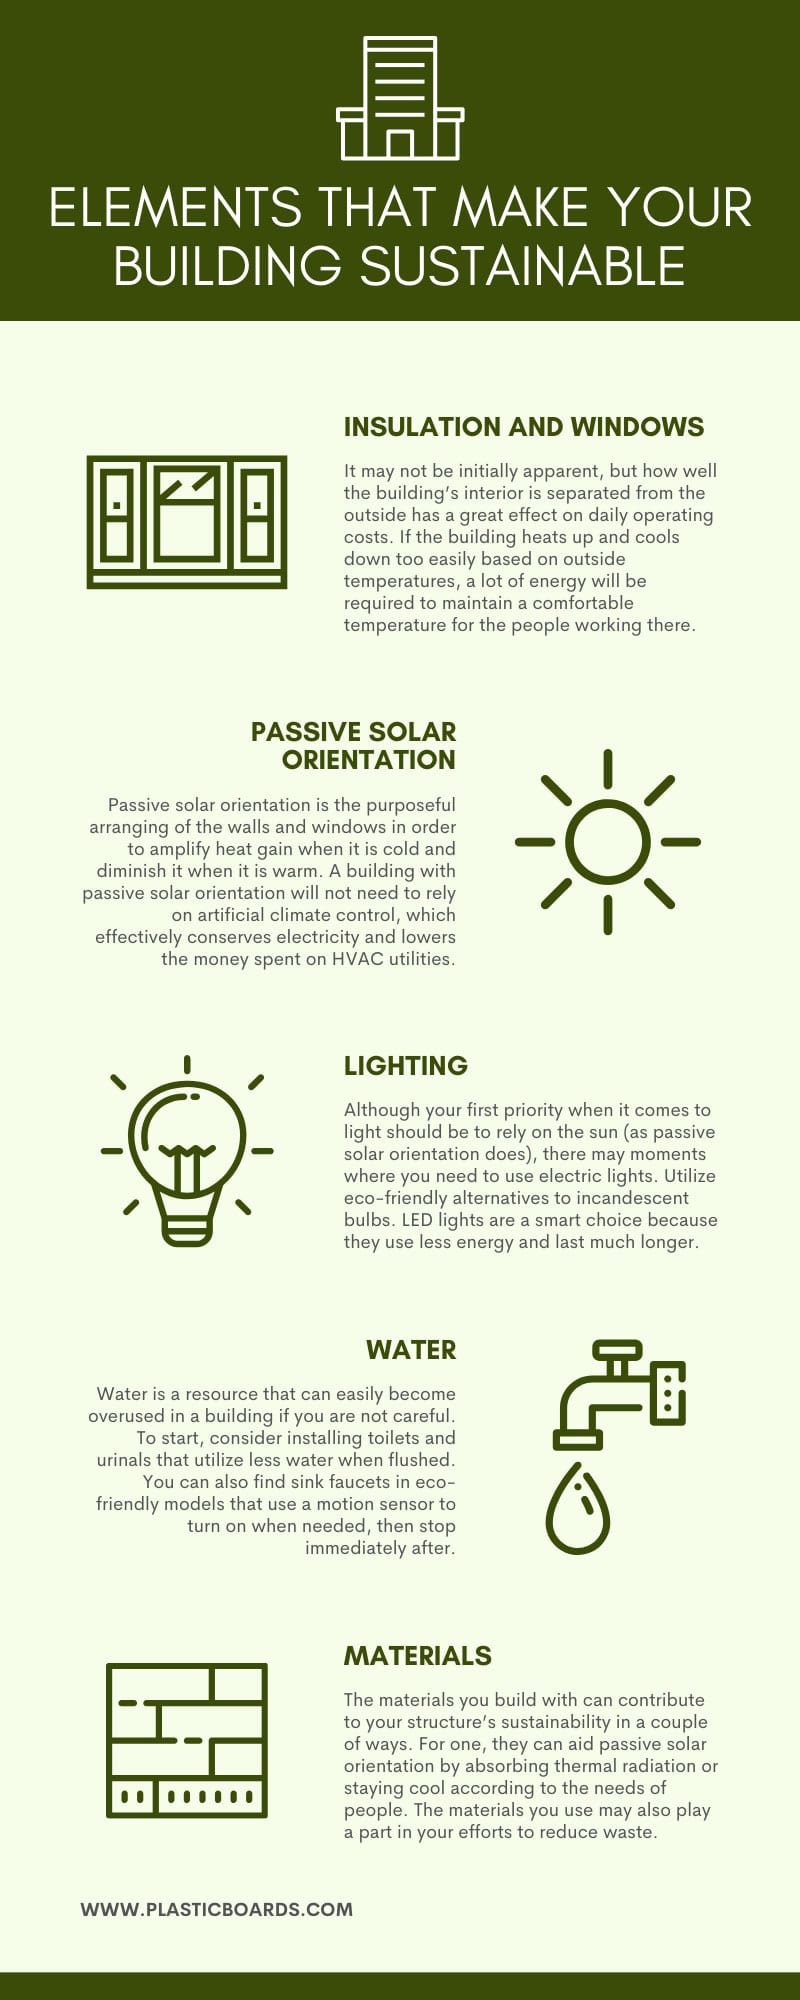 Elements That Make Your Building Sustainable